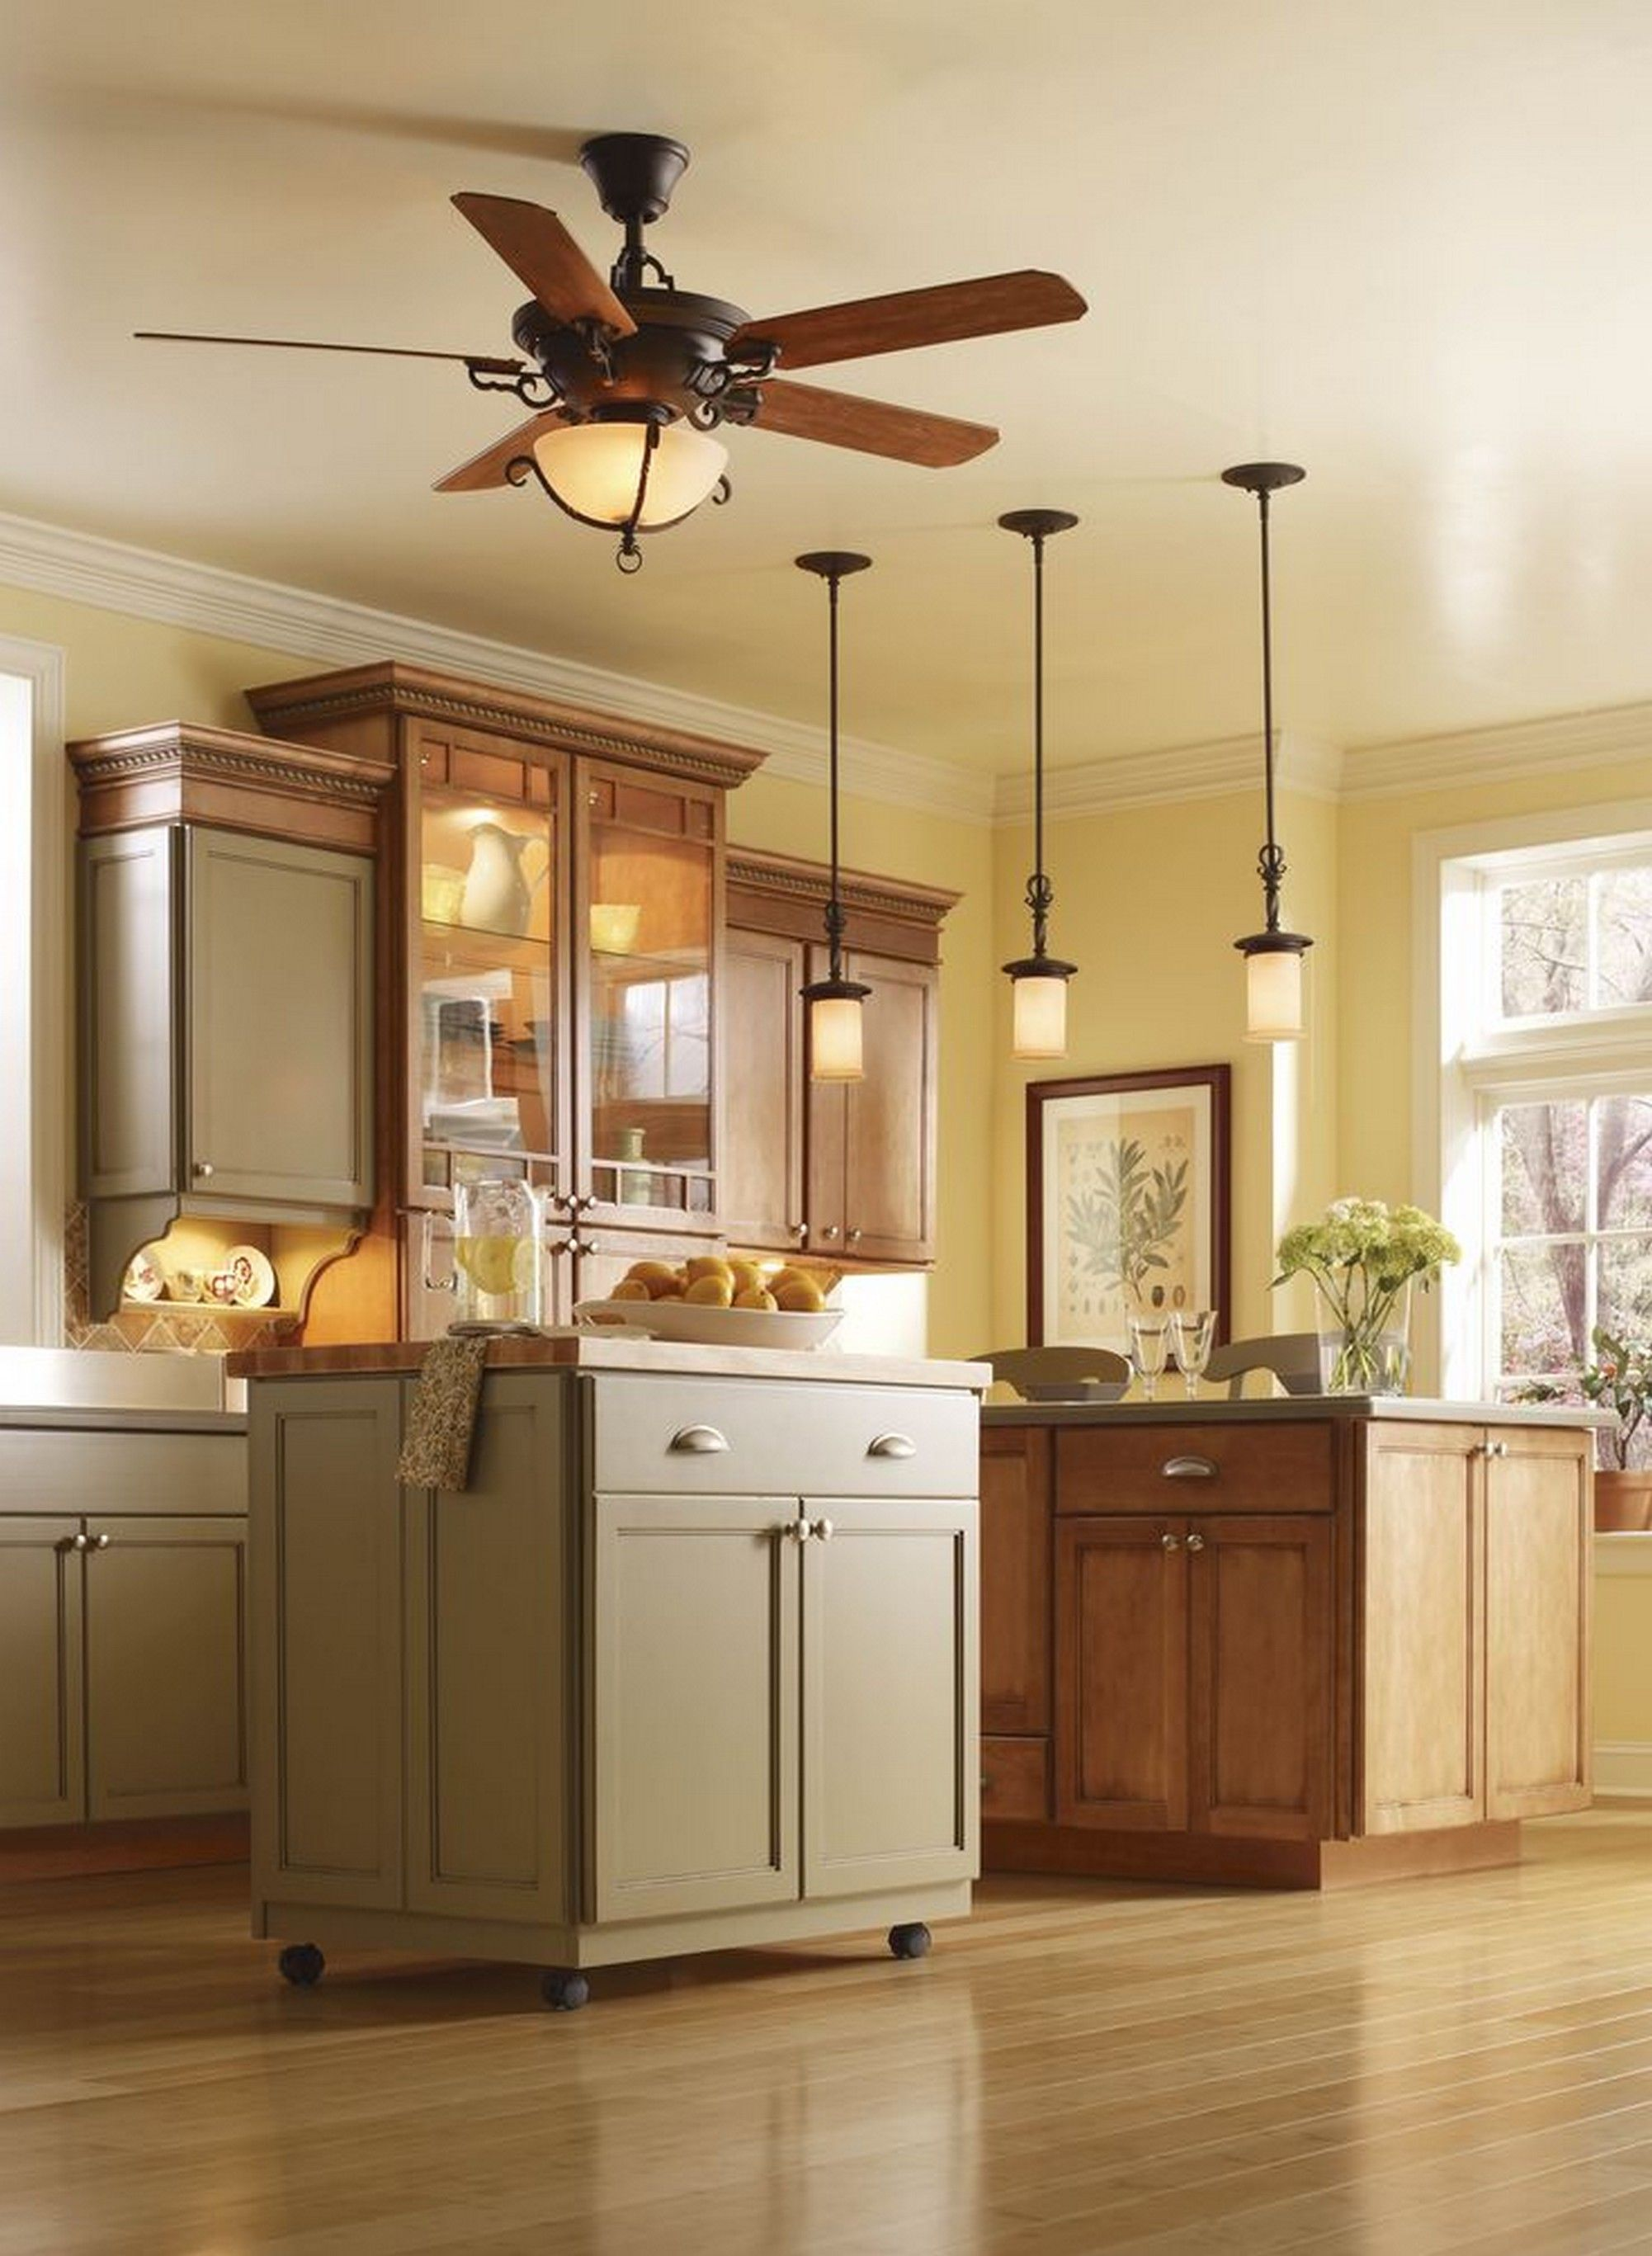 Small Island Under Awesome Kitchen Ceiling Lights With Wooden ...